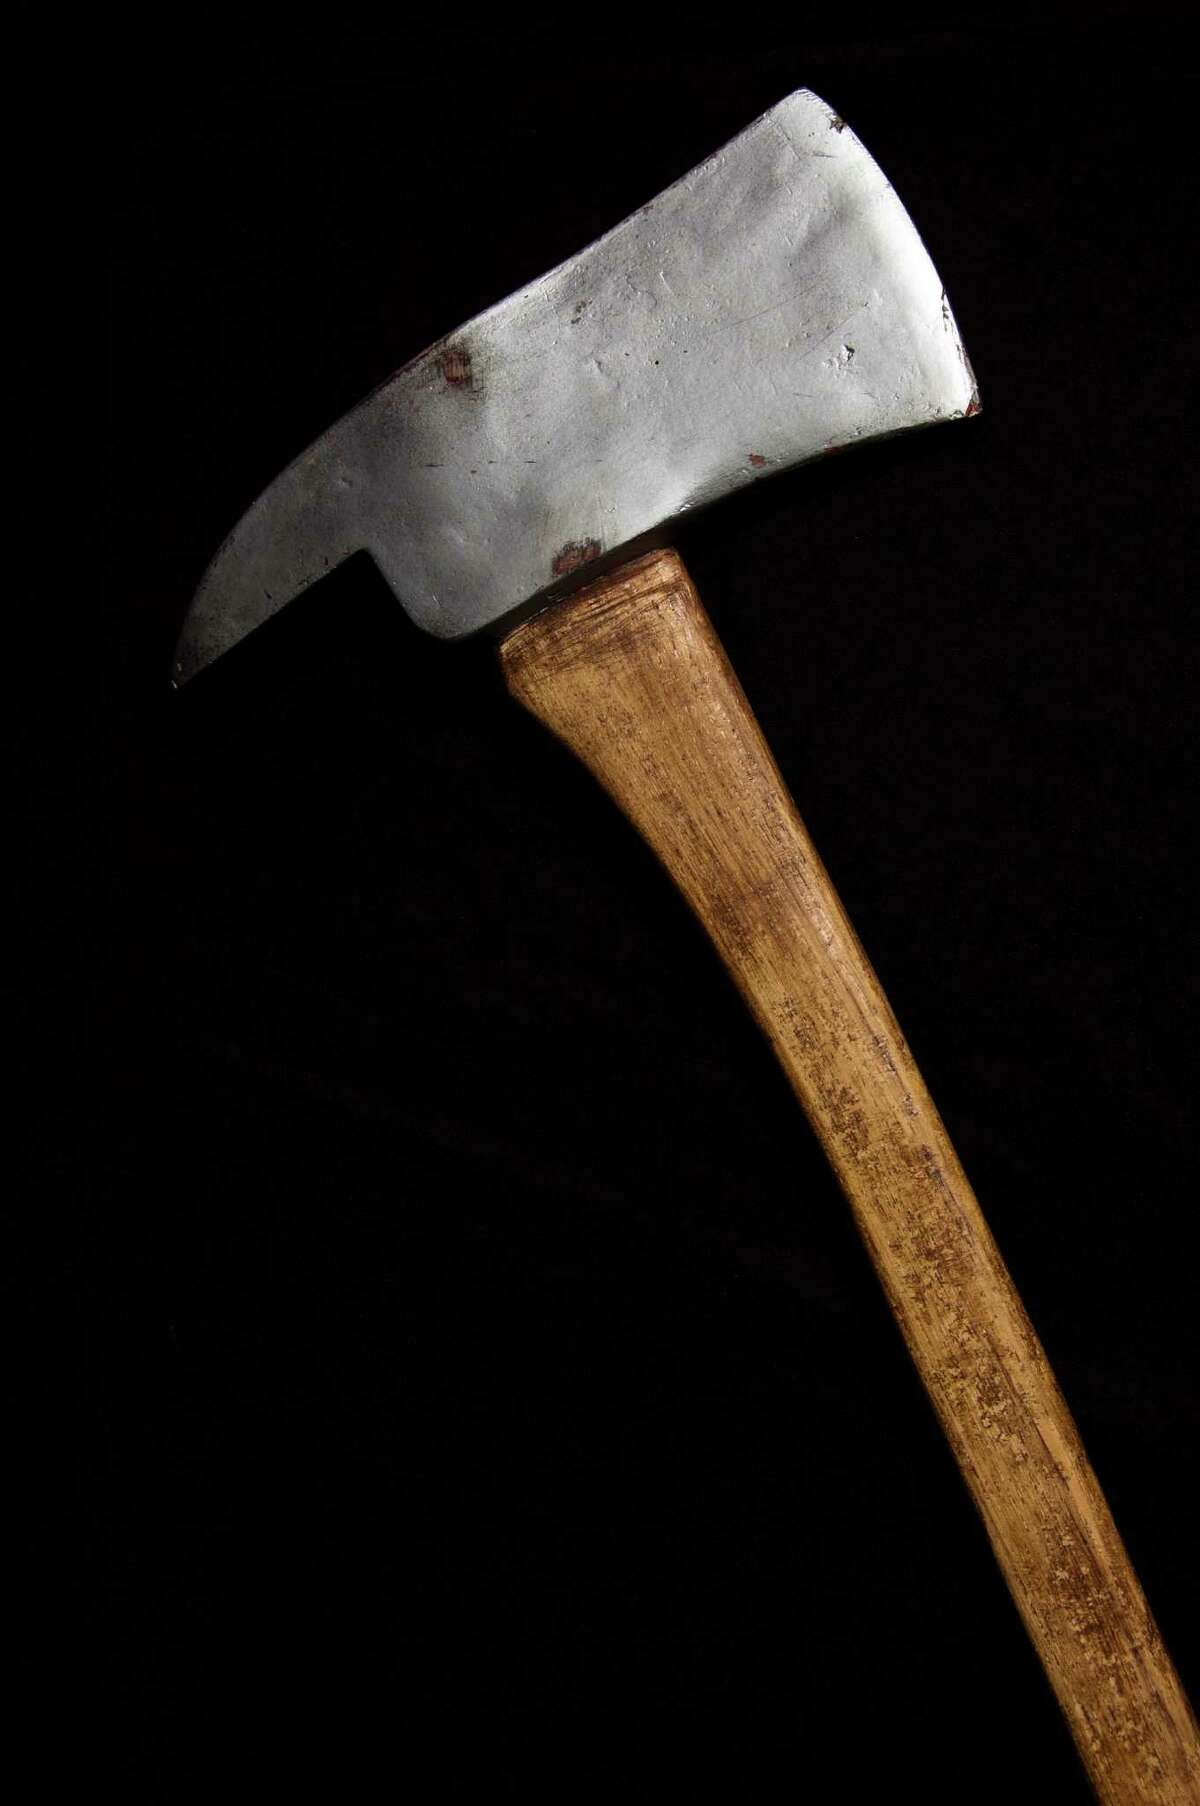 An axe used by Jack Nicholson as Jack Torrance in